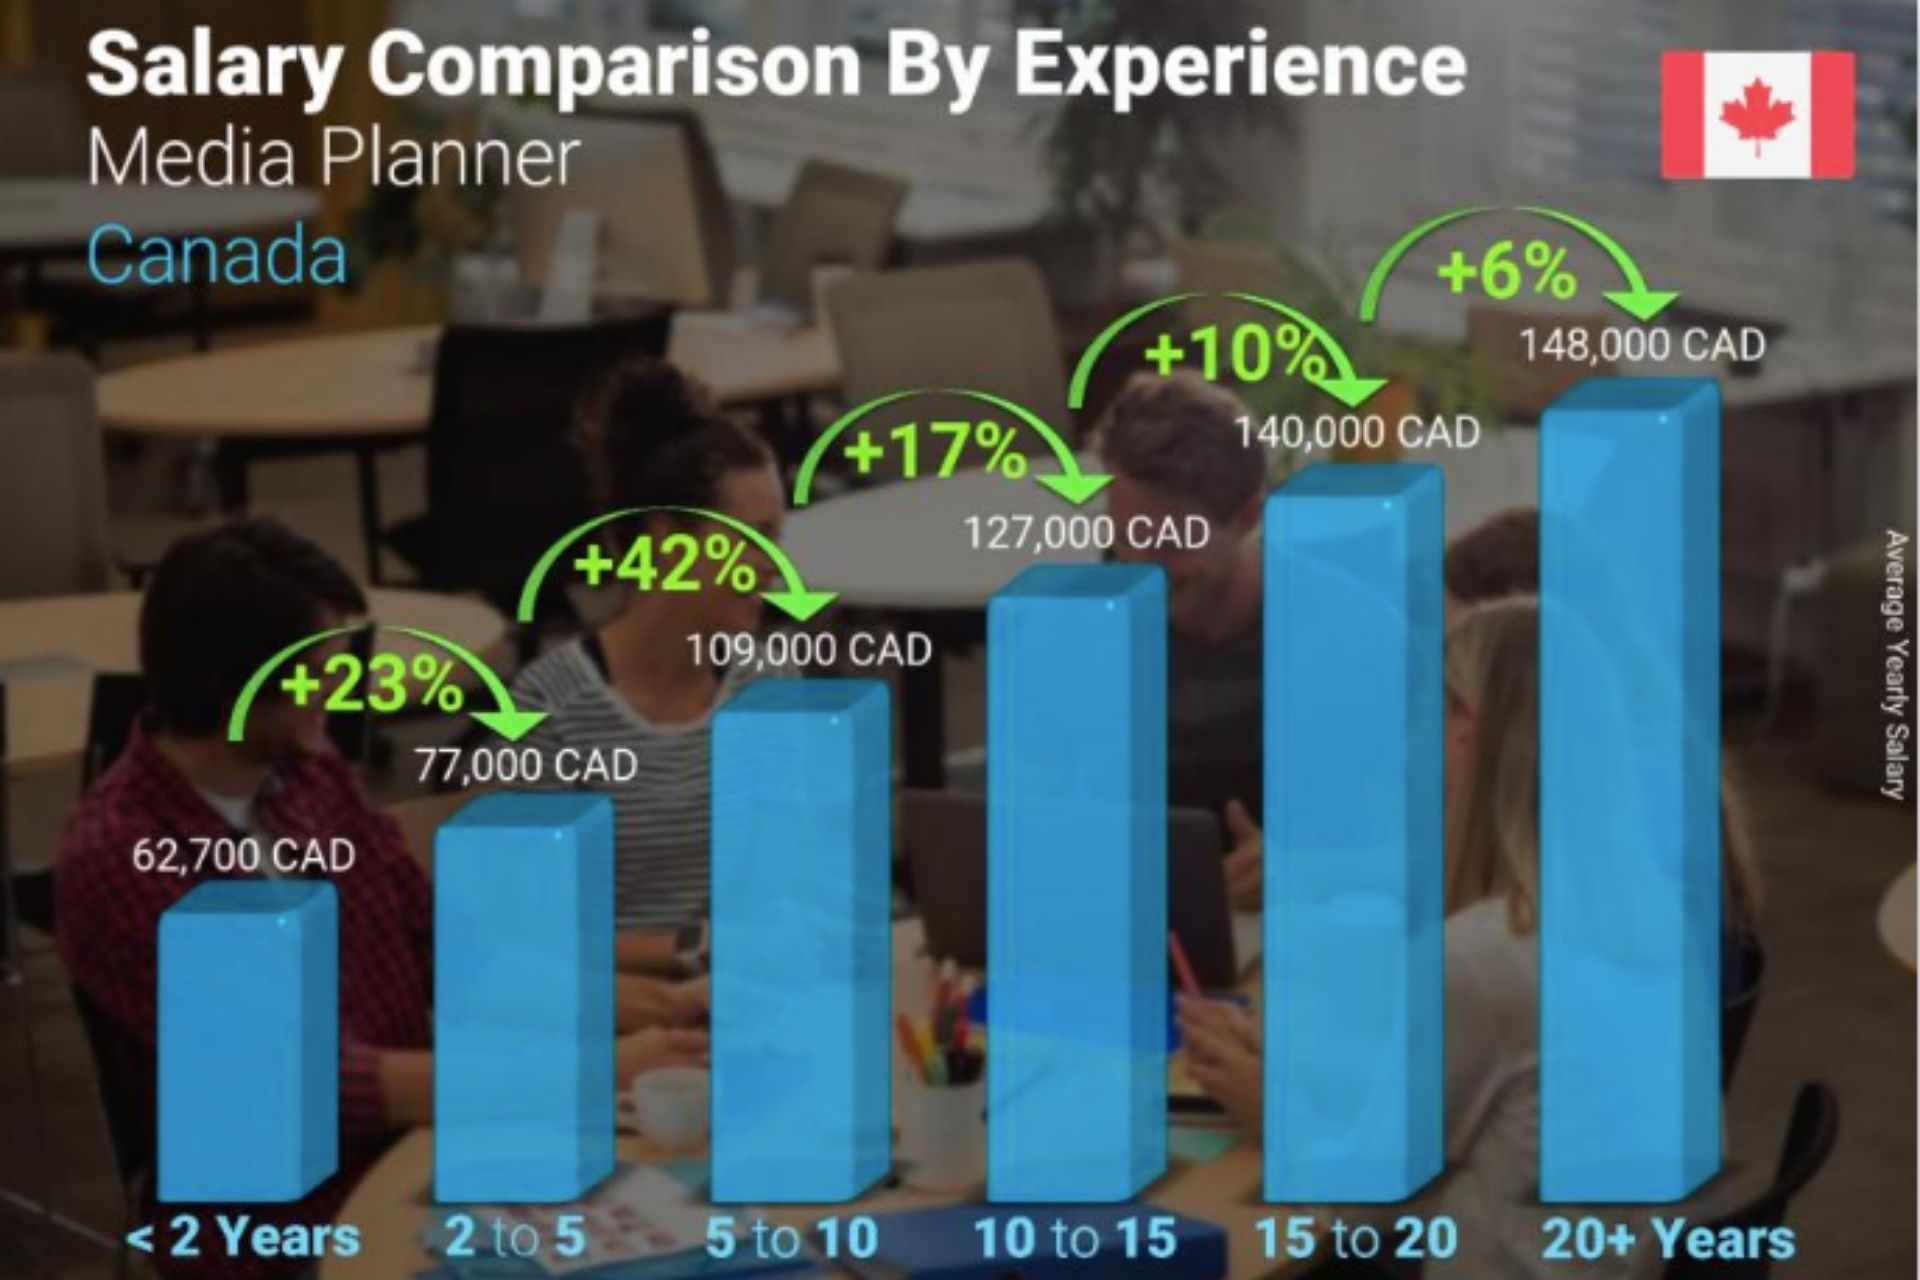 A graph showing annual Media Planner salary comparison by years of experience